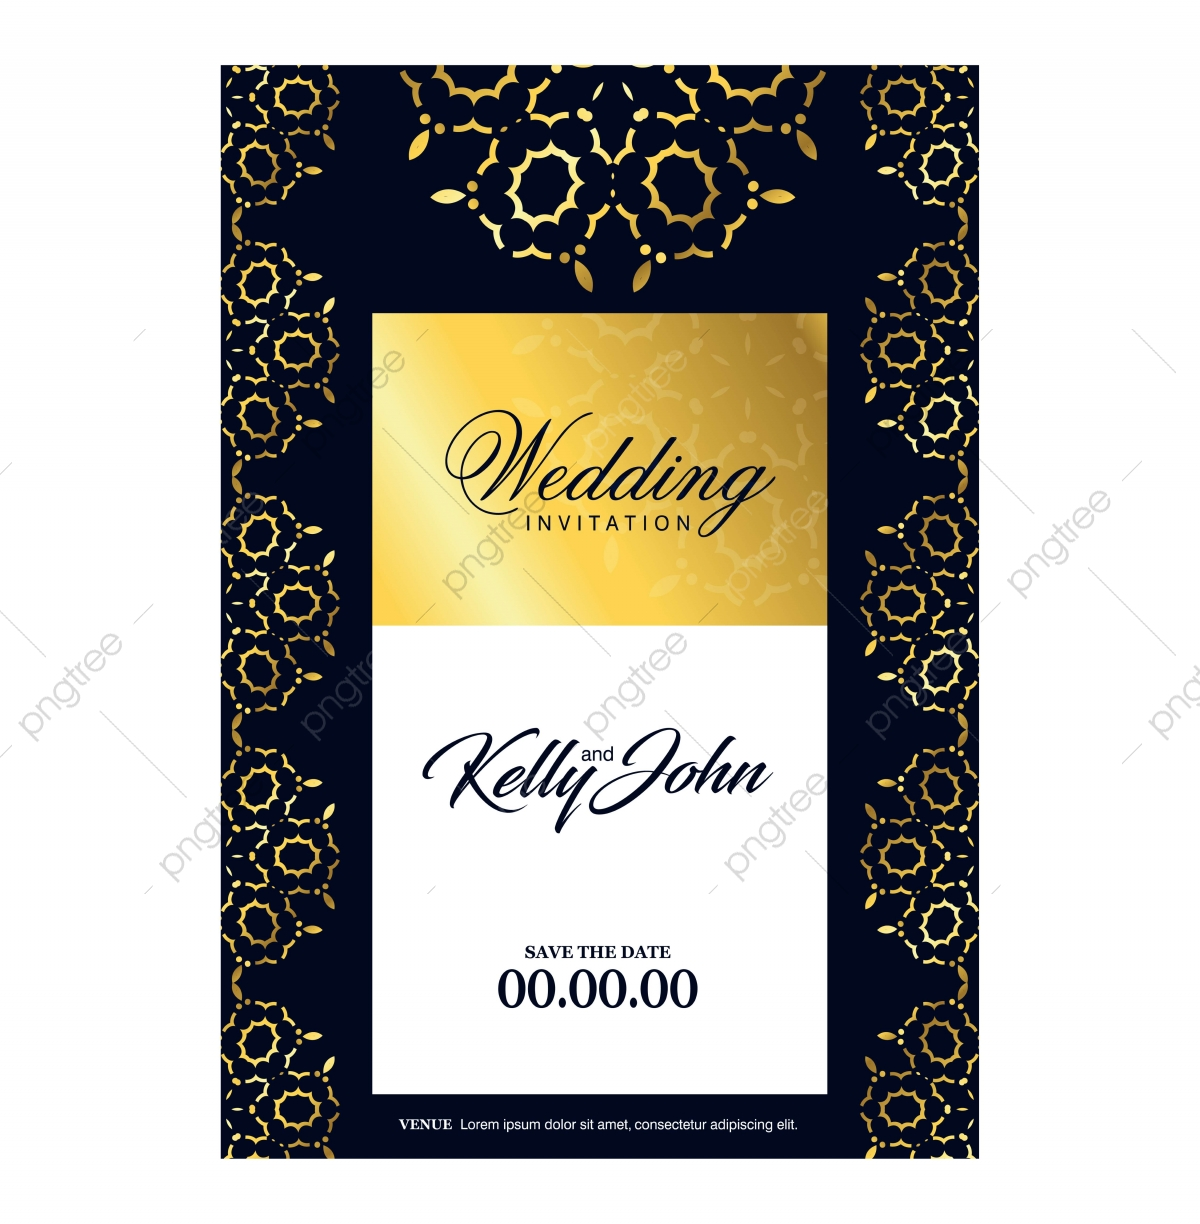 Wedding Cards Design Vector Best Wedding Cards Design Christian Wedding Cards Design Free Wedding Cards Design Png And Vector With Transparent Background For Free Download